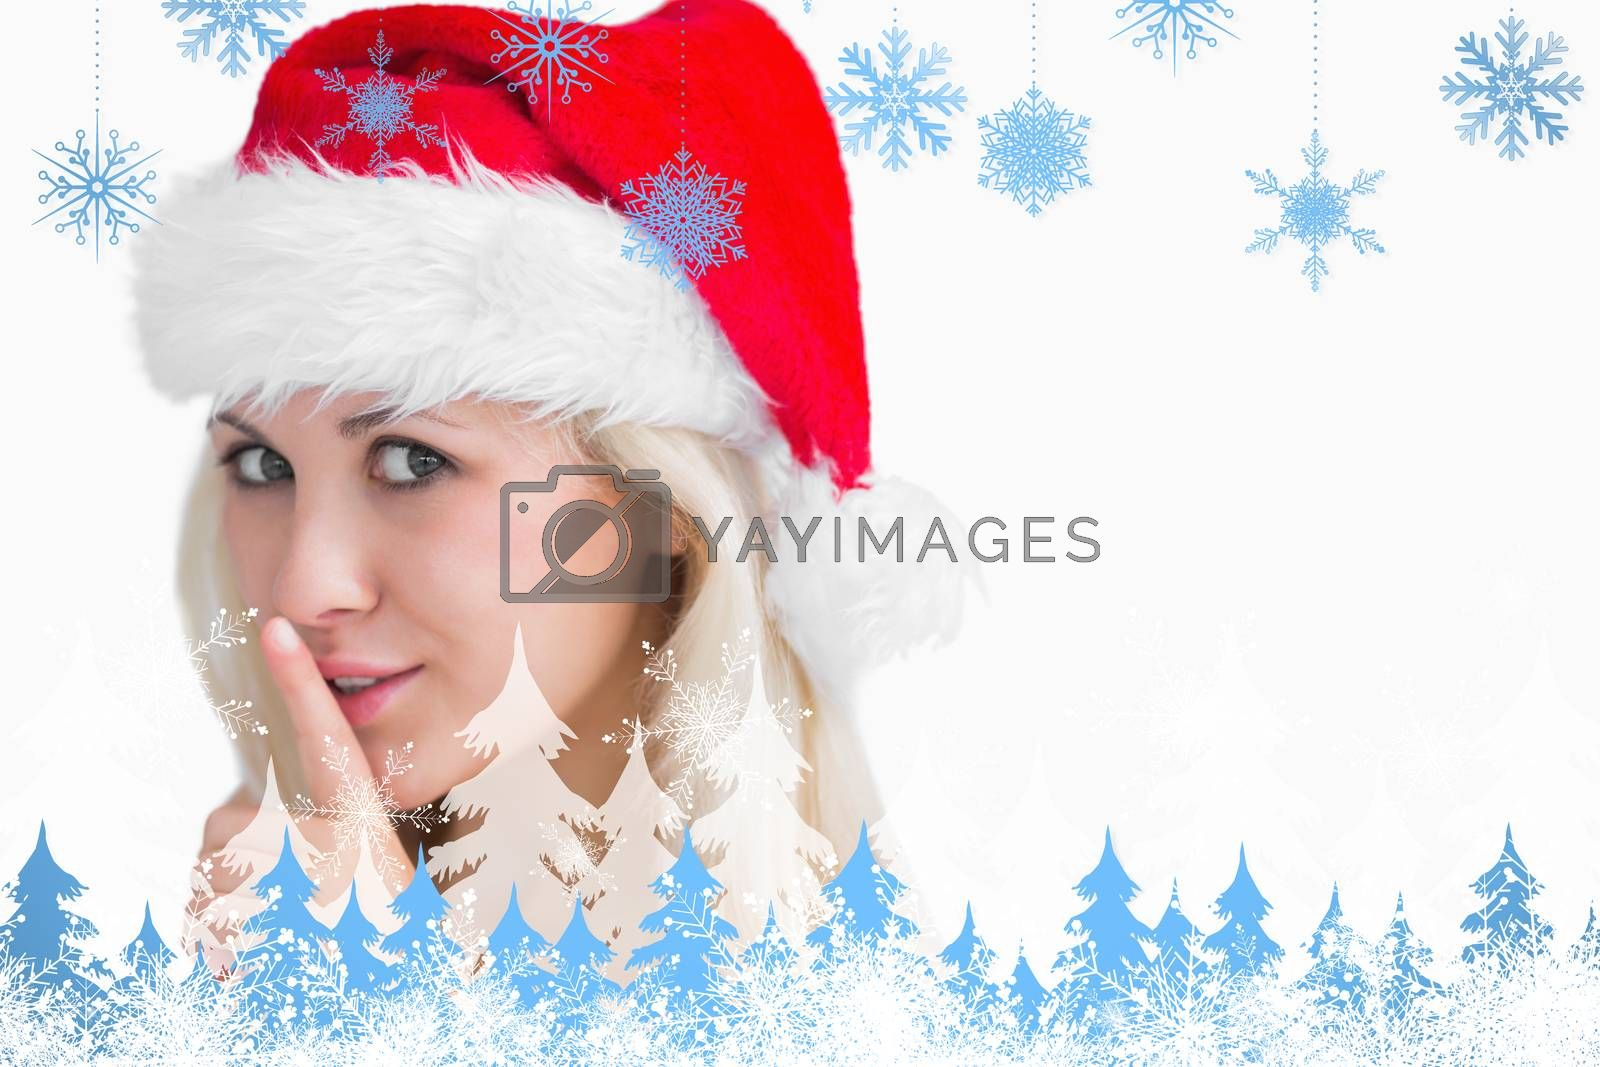 Woman in santa hat making silence gesture against snowflakes and fir trees